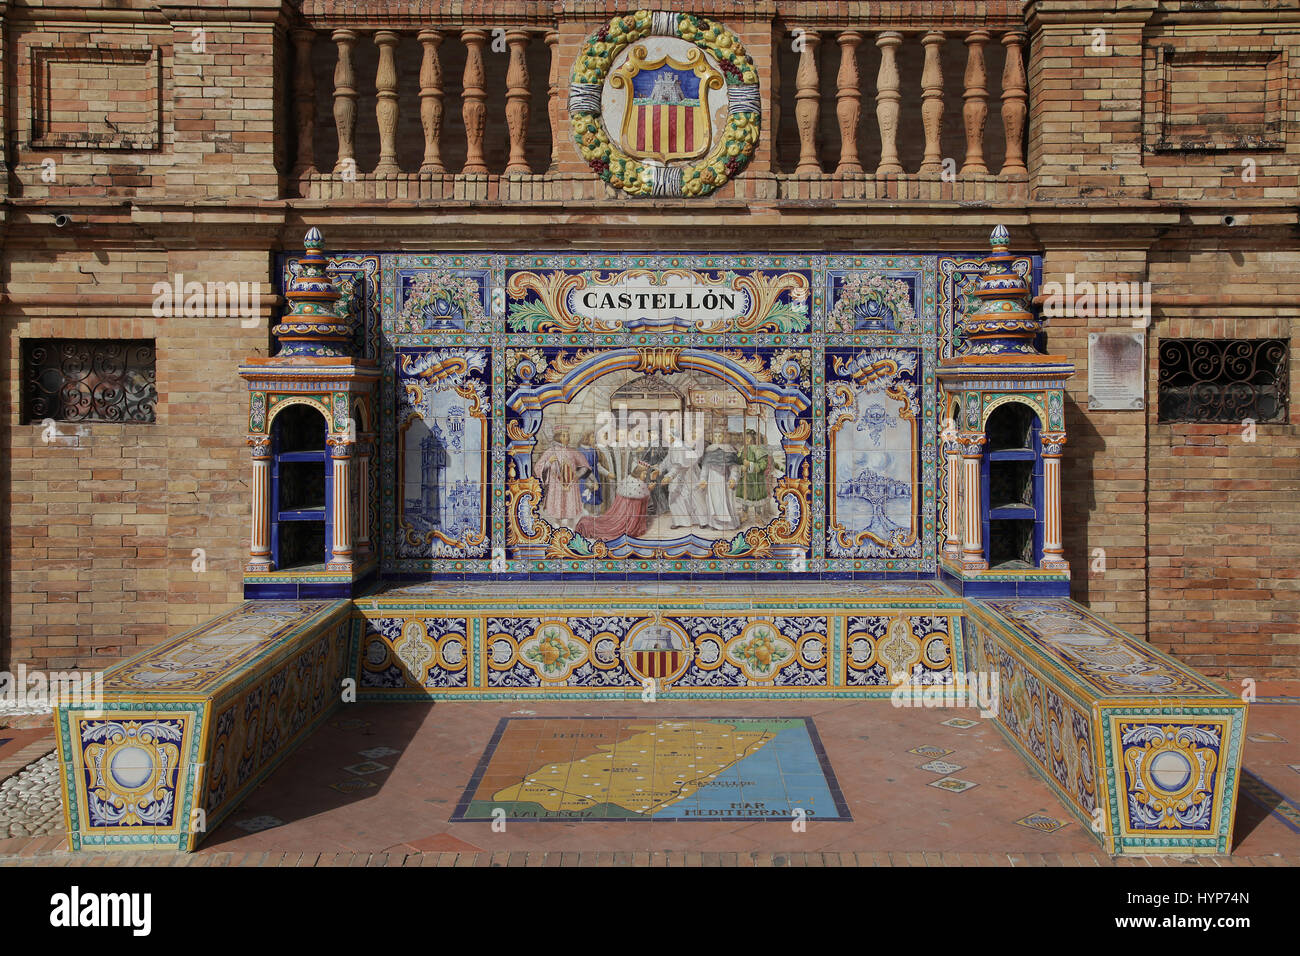 Azulejos Castellon Castellon Stock Photos And Castellon Stock Images Alamy